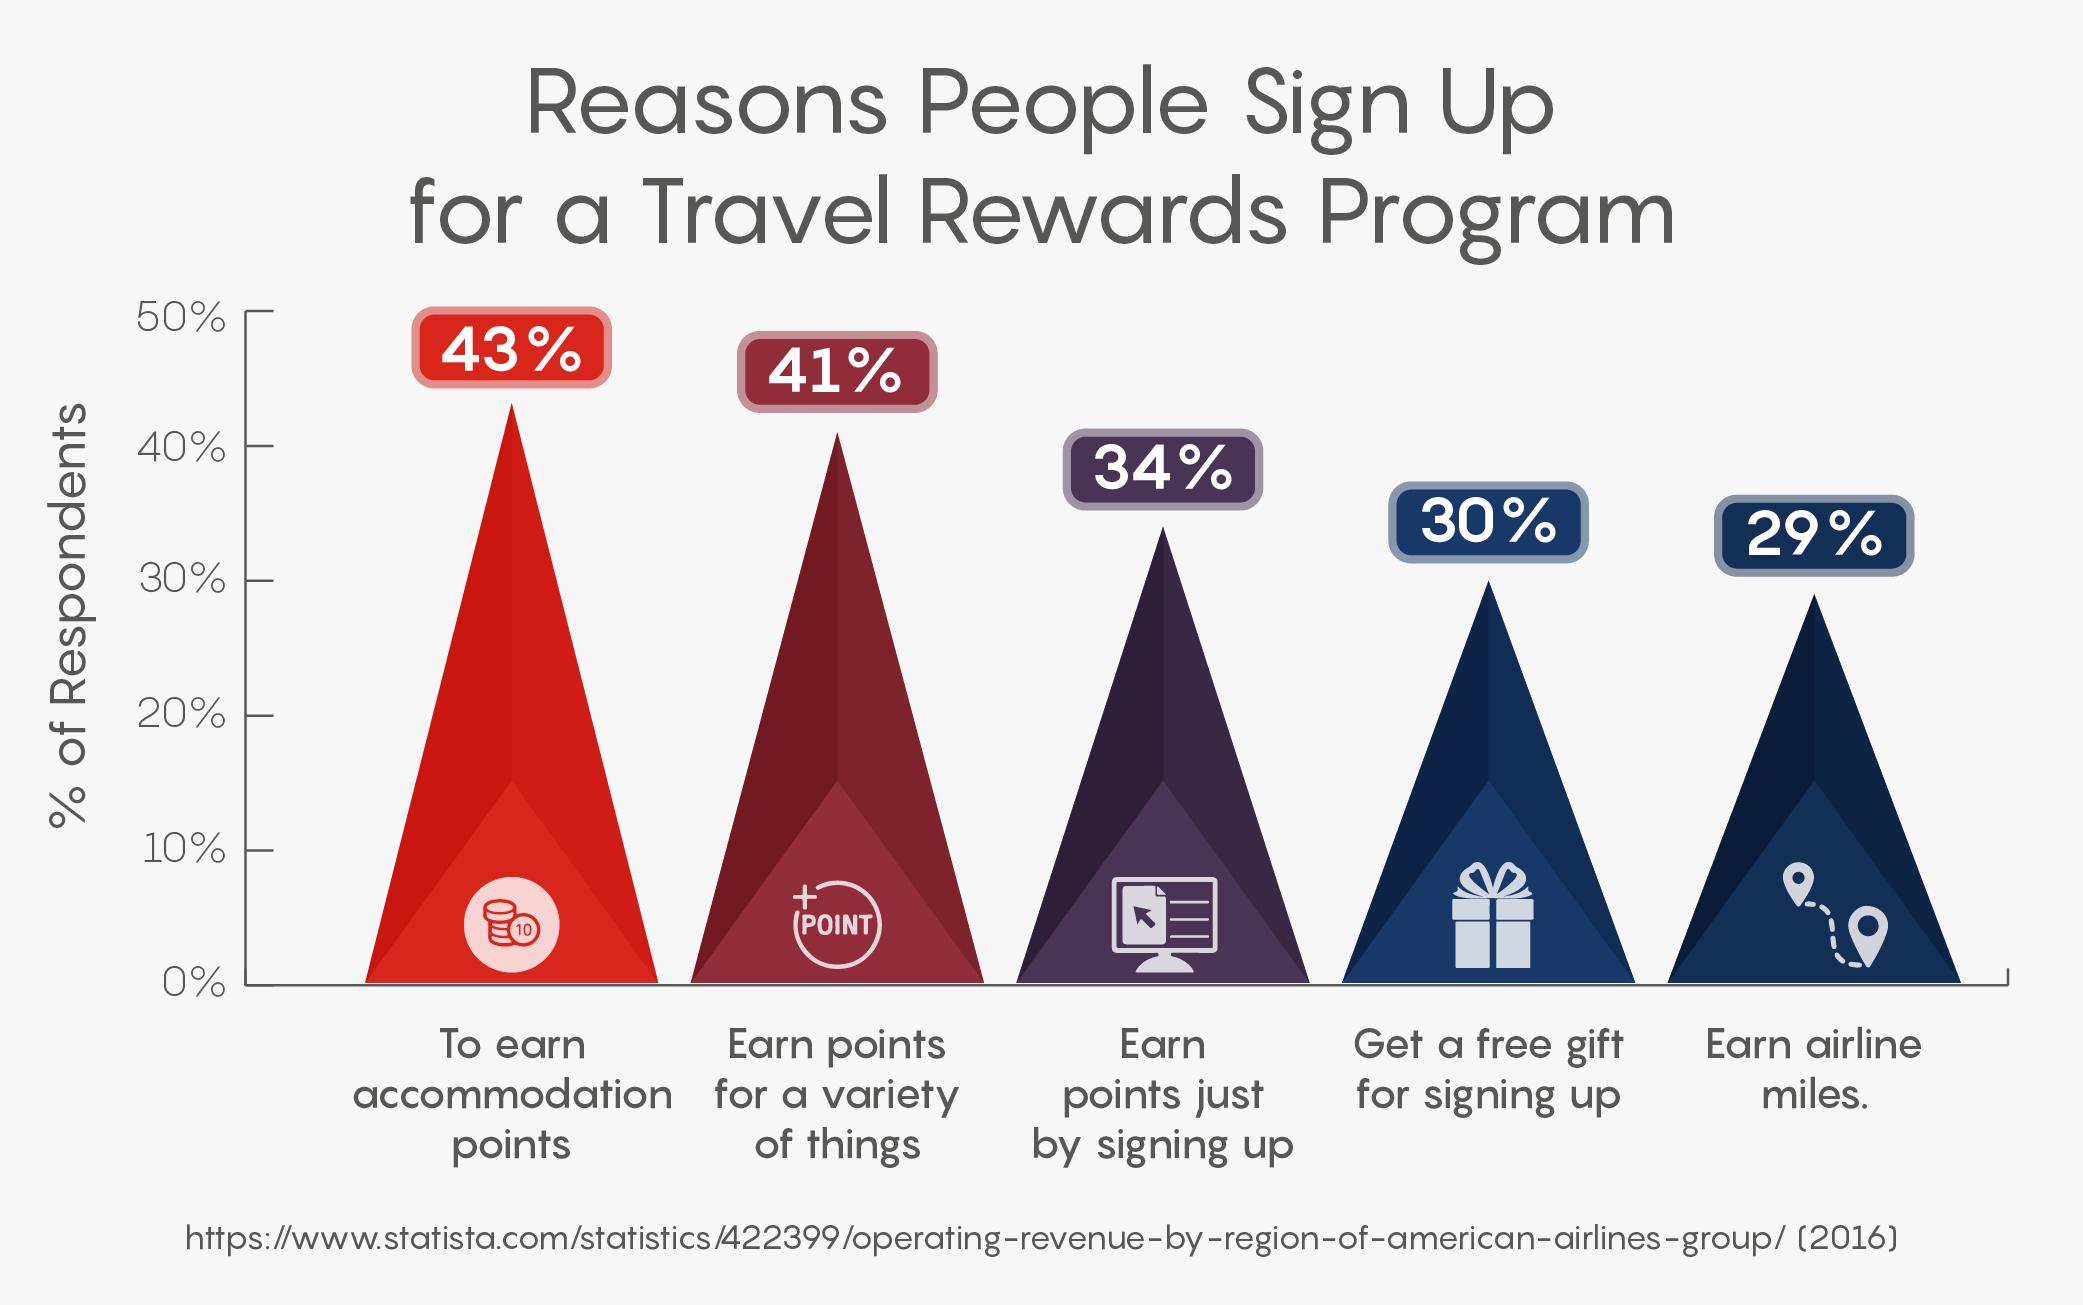 Reasons People Sign Up for a Travel Rewards Program